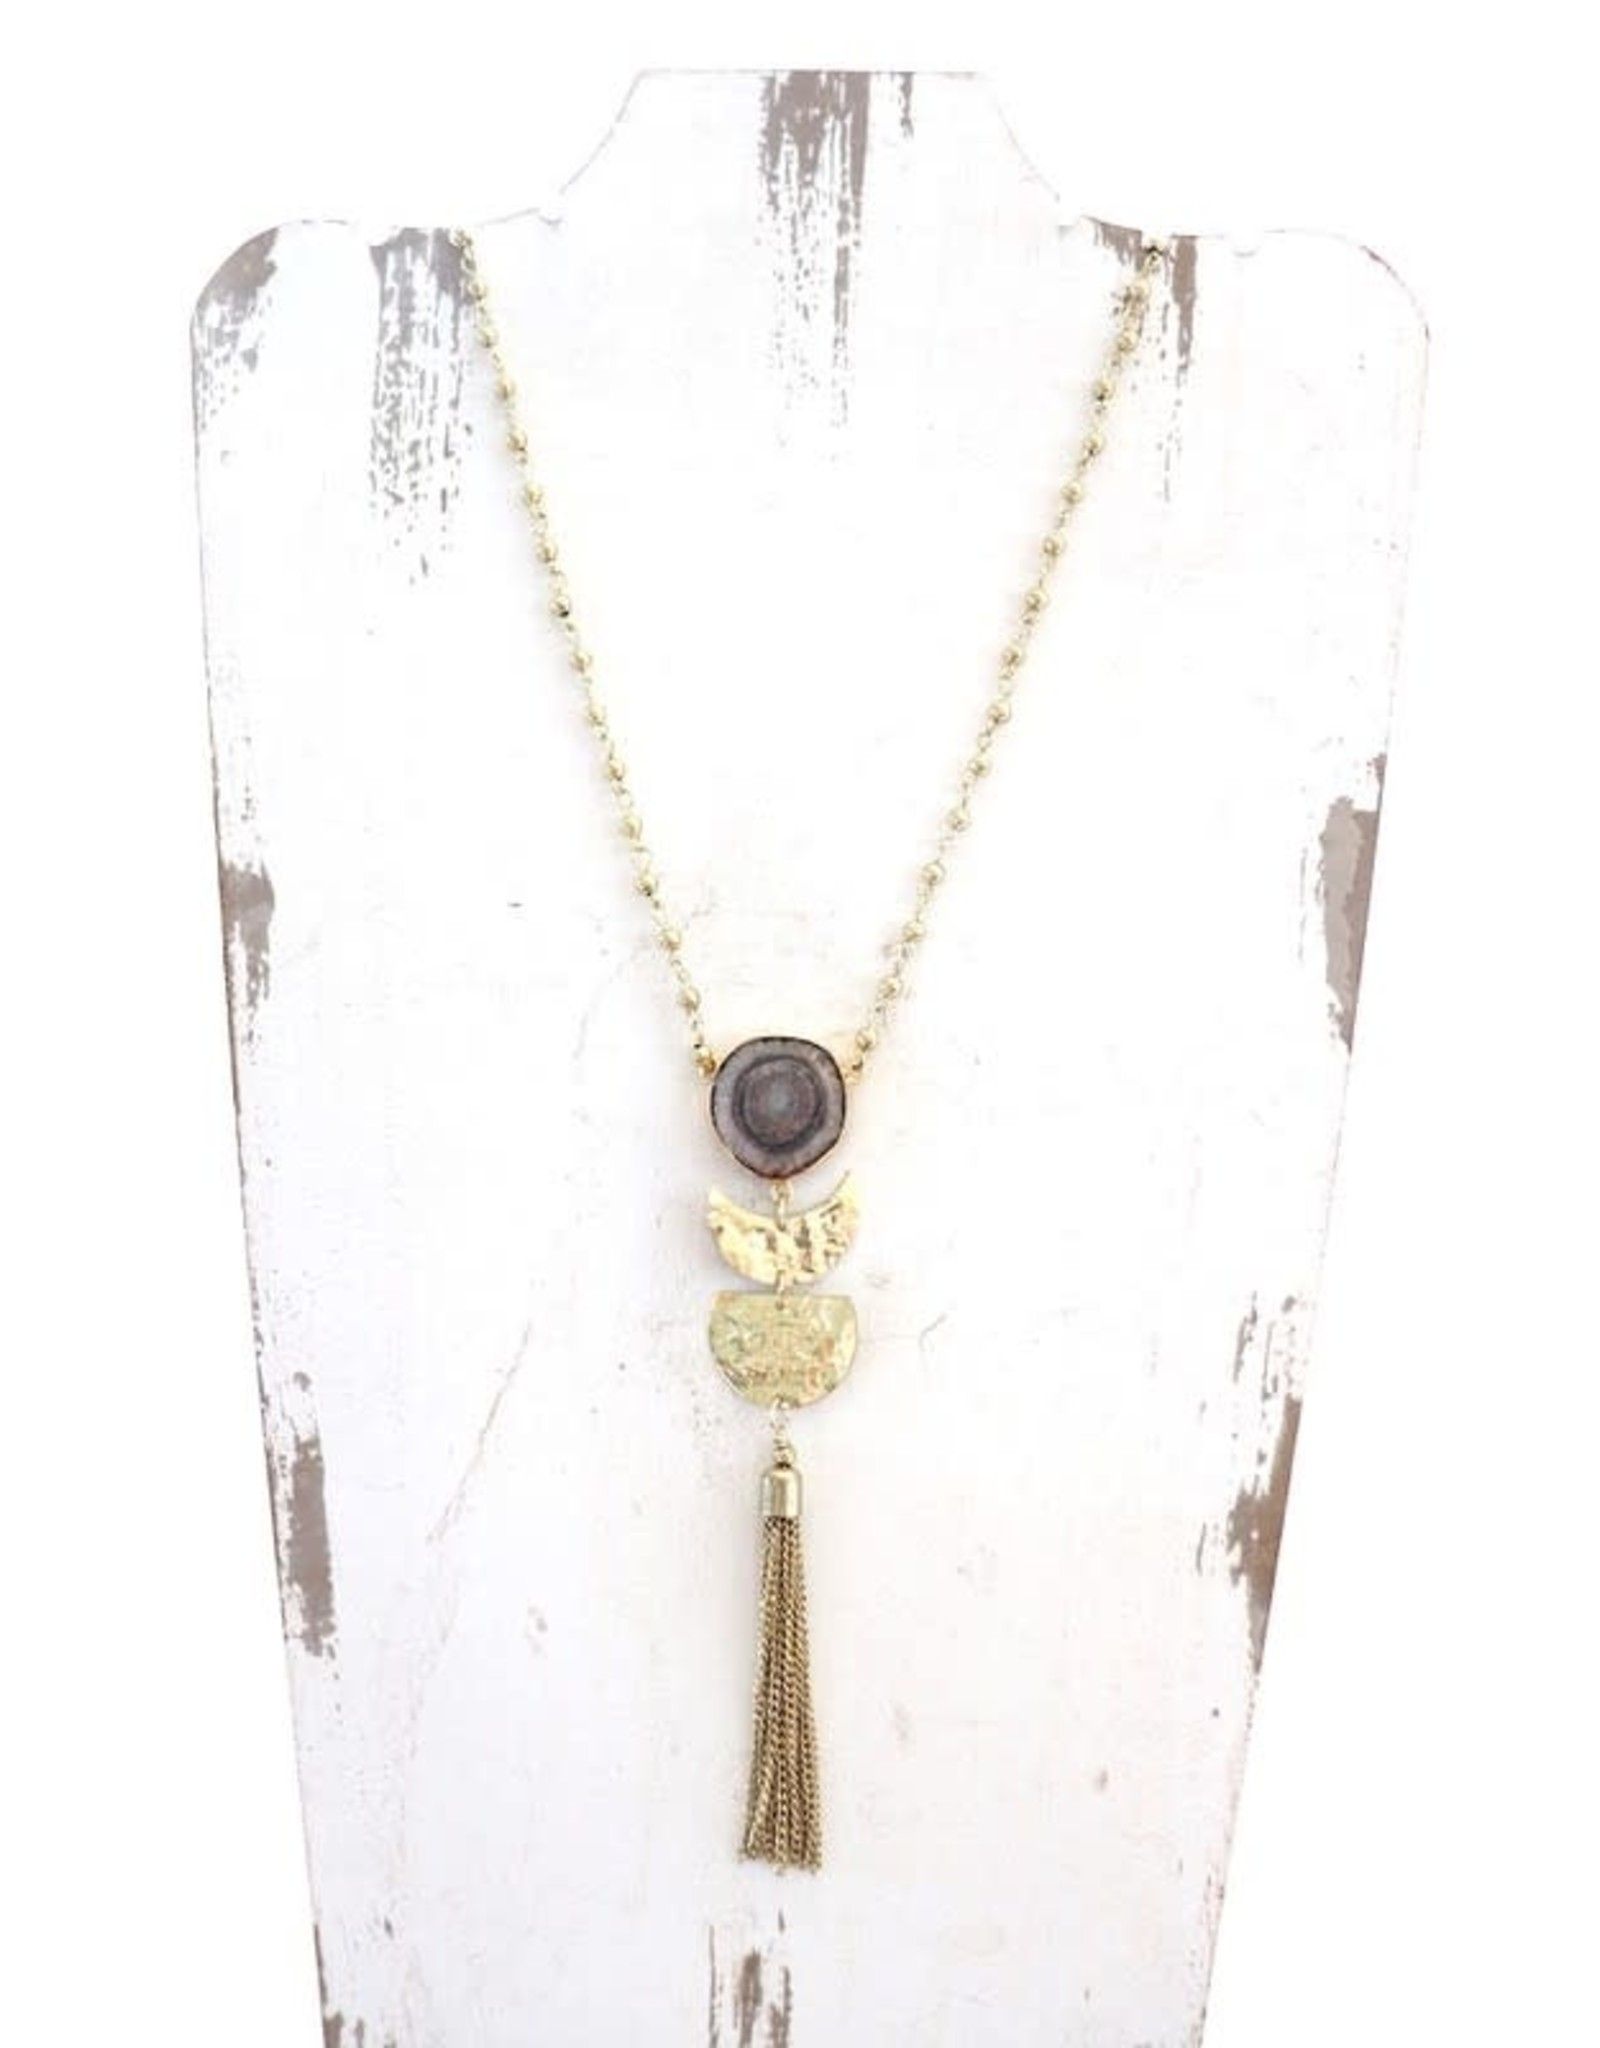 LONG GOLD NECKLACE W/ GREY GEO STONE AND CHAIN TASSEL N-39